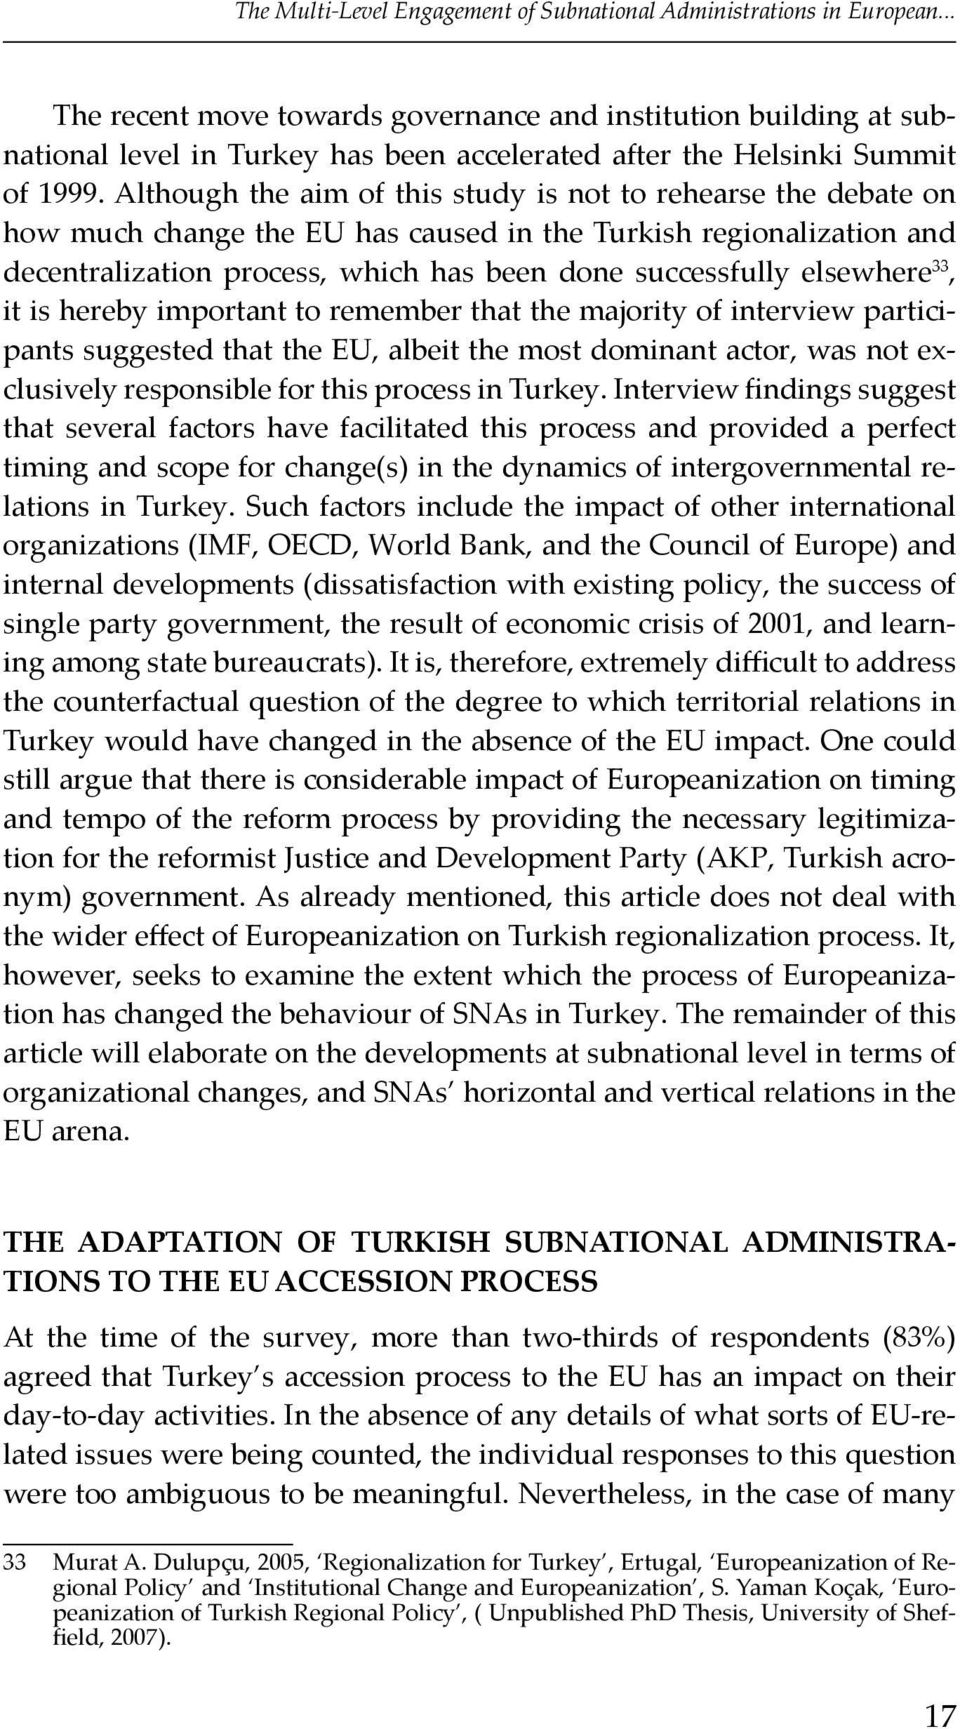 Although the aim of this study is not to rehearse the debate on how much change the EU has caused in the Turkish regionalization and decentralization process, which has been done successfully